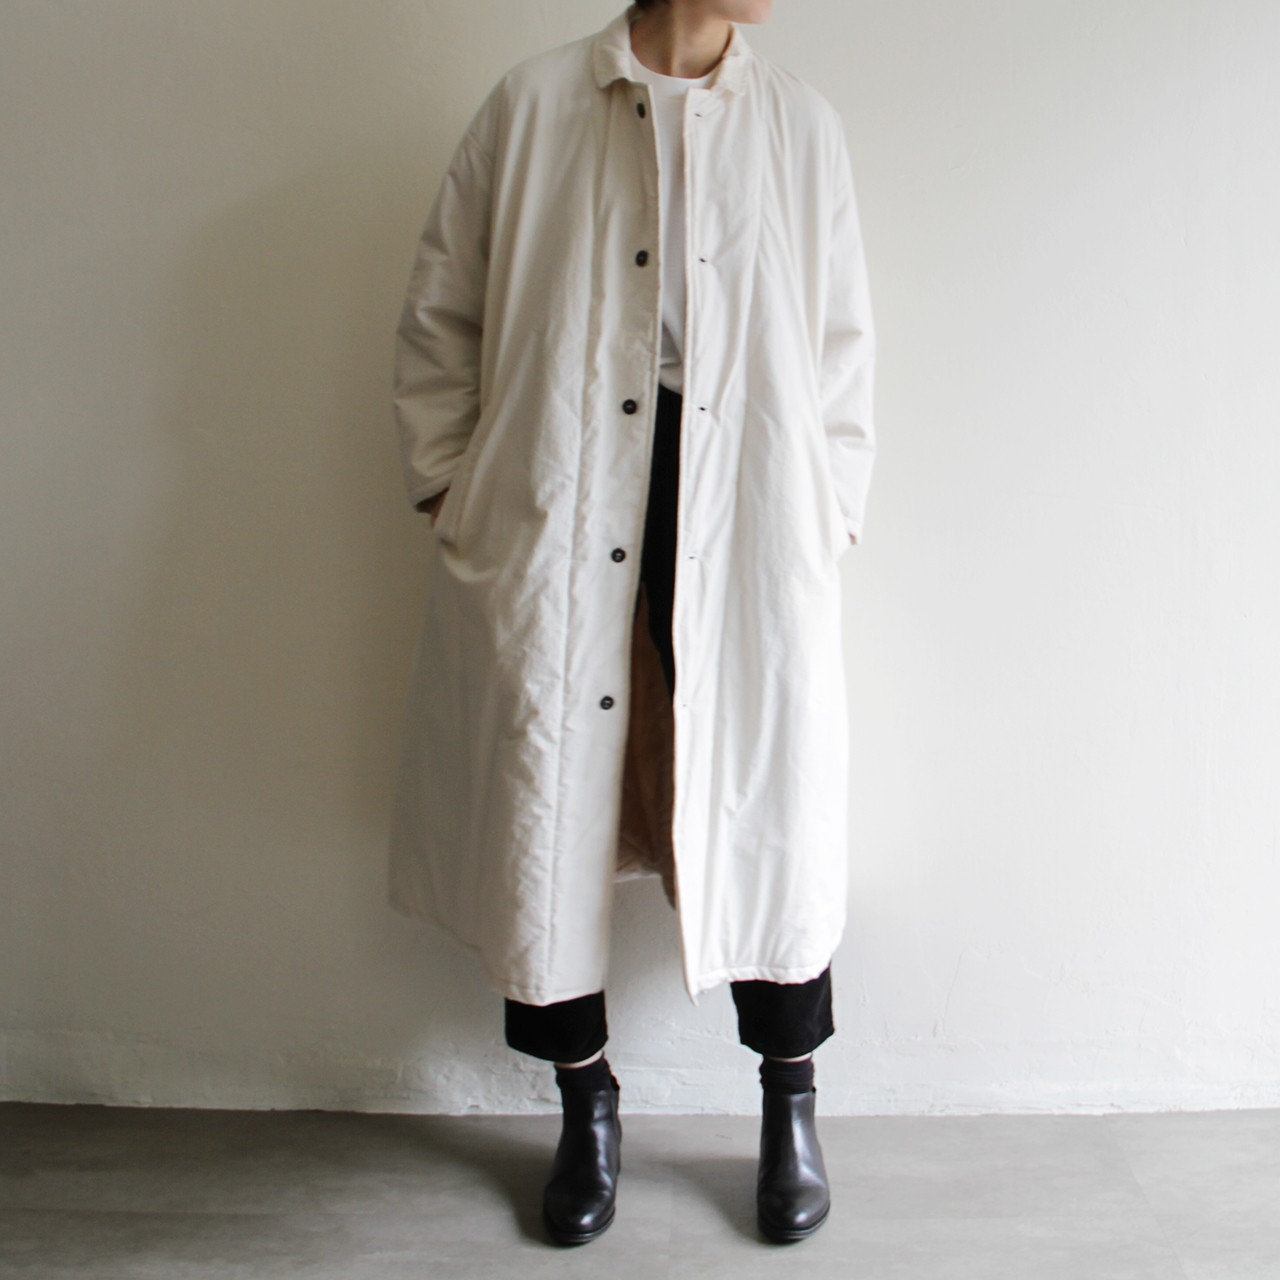 Yarmo quilt lined coat